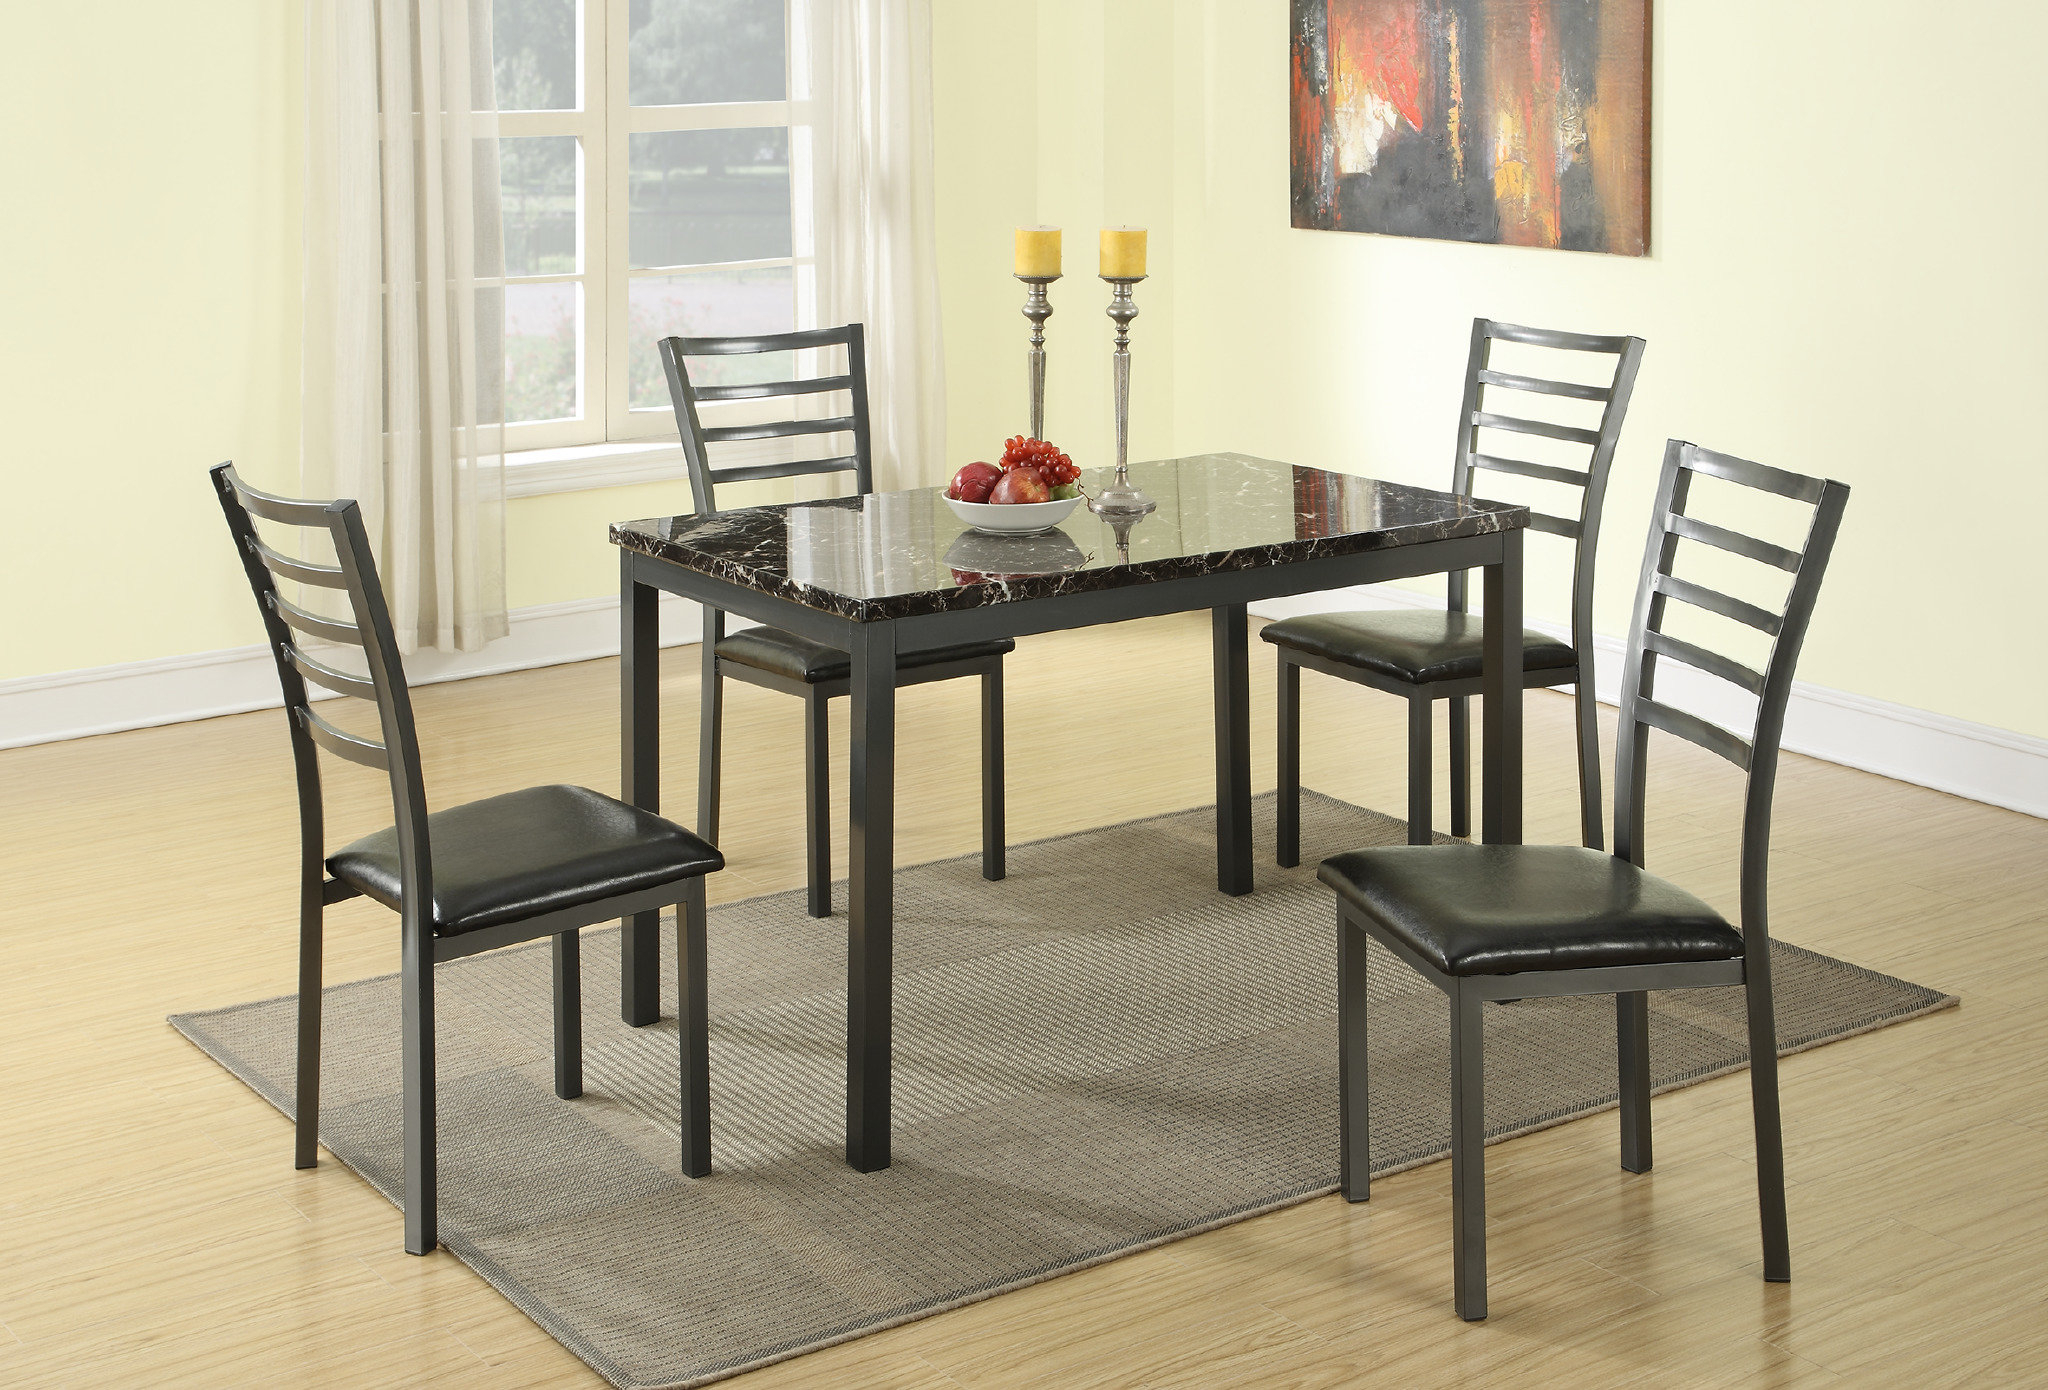 Autberry 5 Piece Dining Sets With Well Known Caenas 5 Piece Dining Set (Gallery 18 of 20)